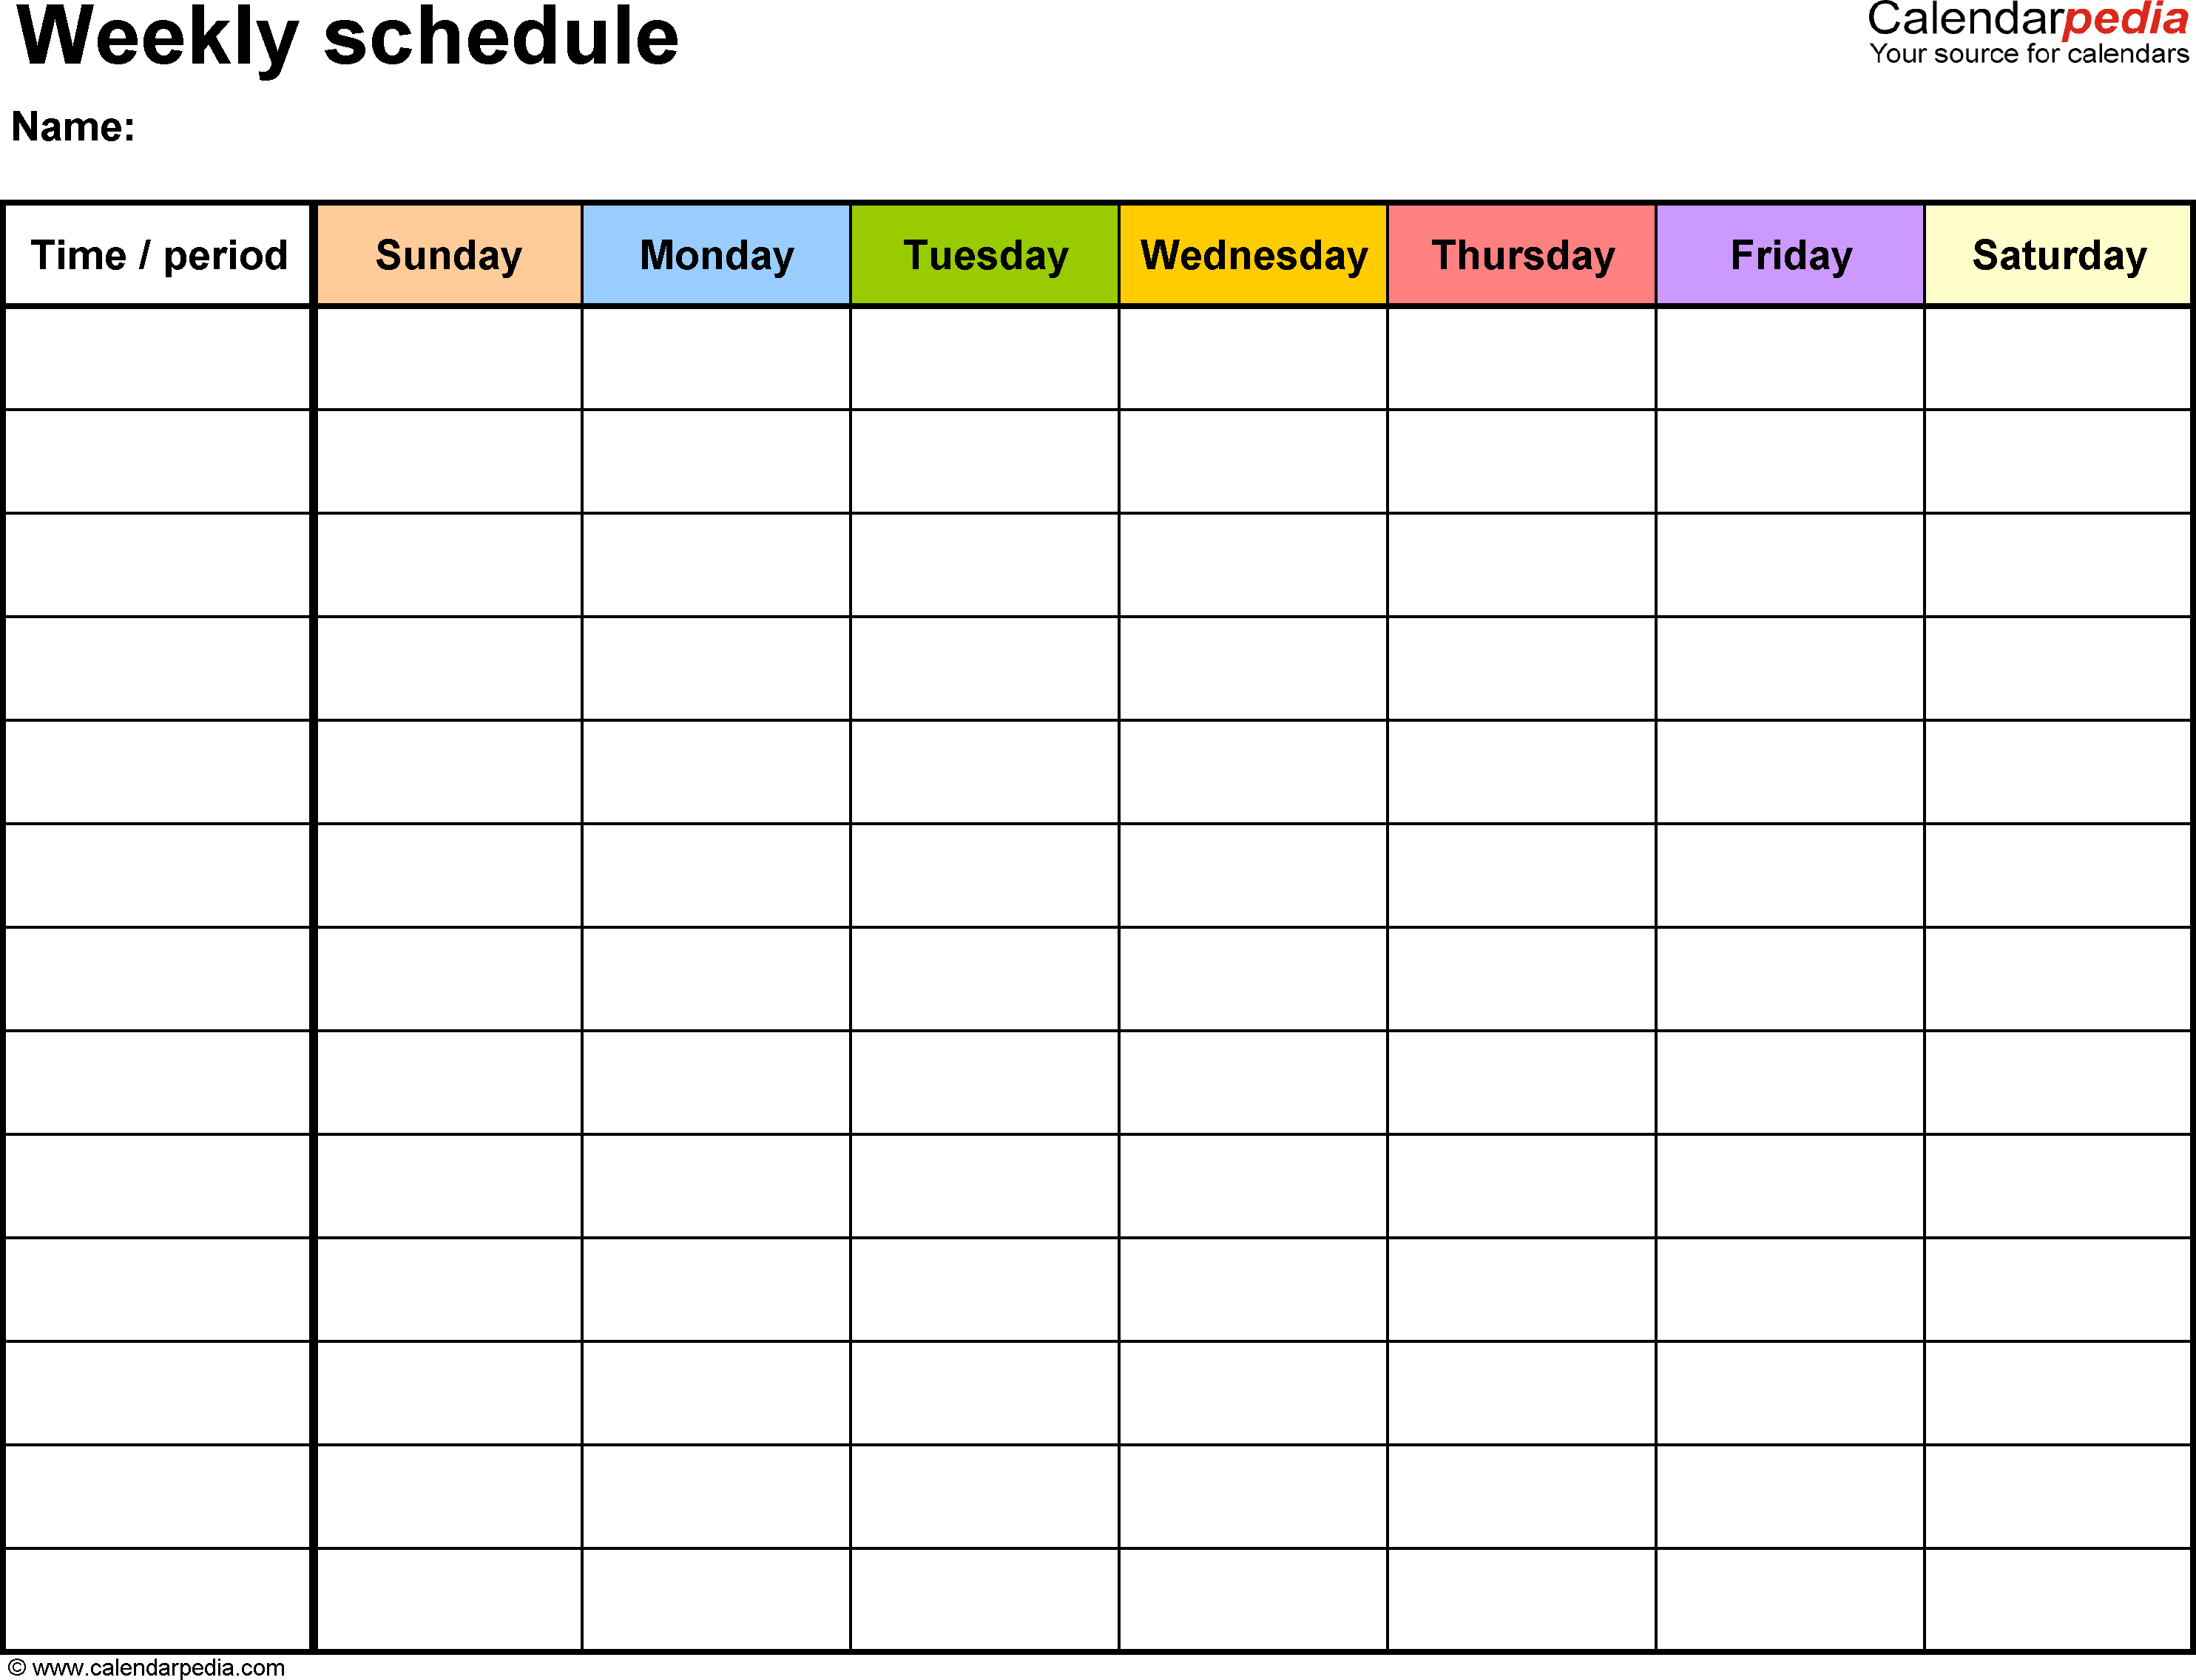 Sunday Through Saturday Calendar Template  Yatay with Monday Through Friday Calendar